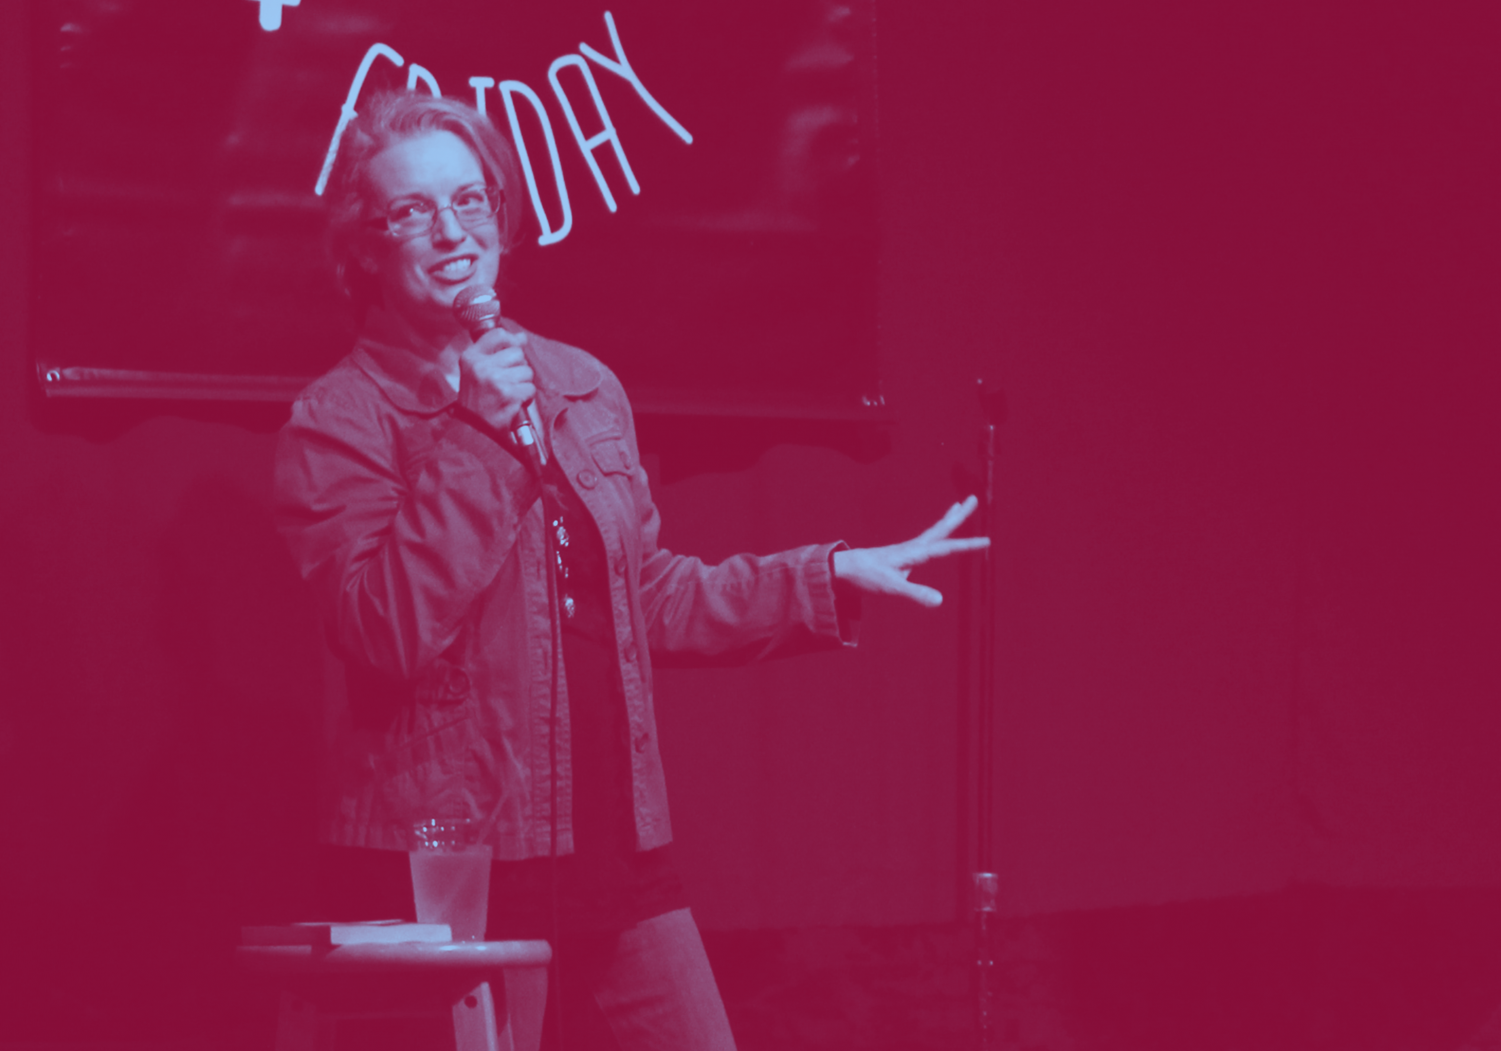 Improv sponsor Rebecca Walker presents her stand-up routine at Still Not Friday at the Two Brothers Round house on Sunday, April 7.